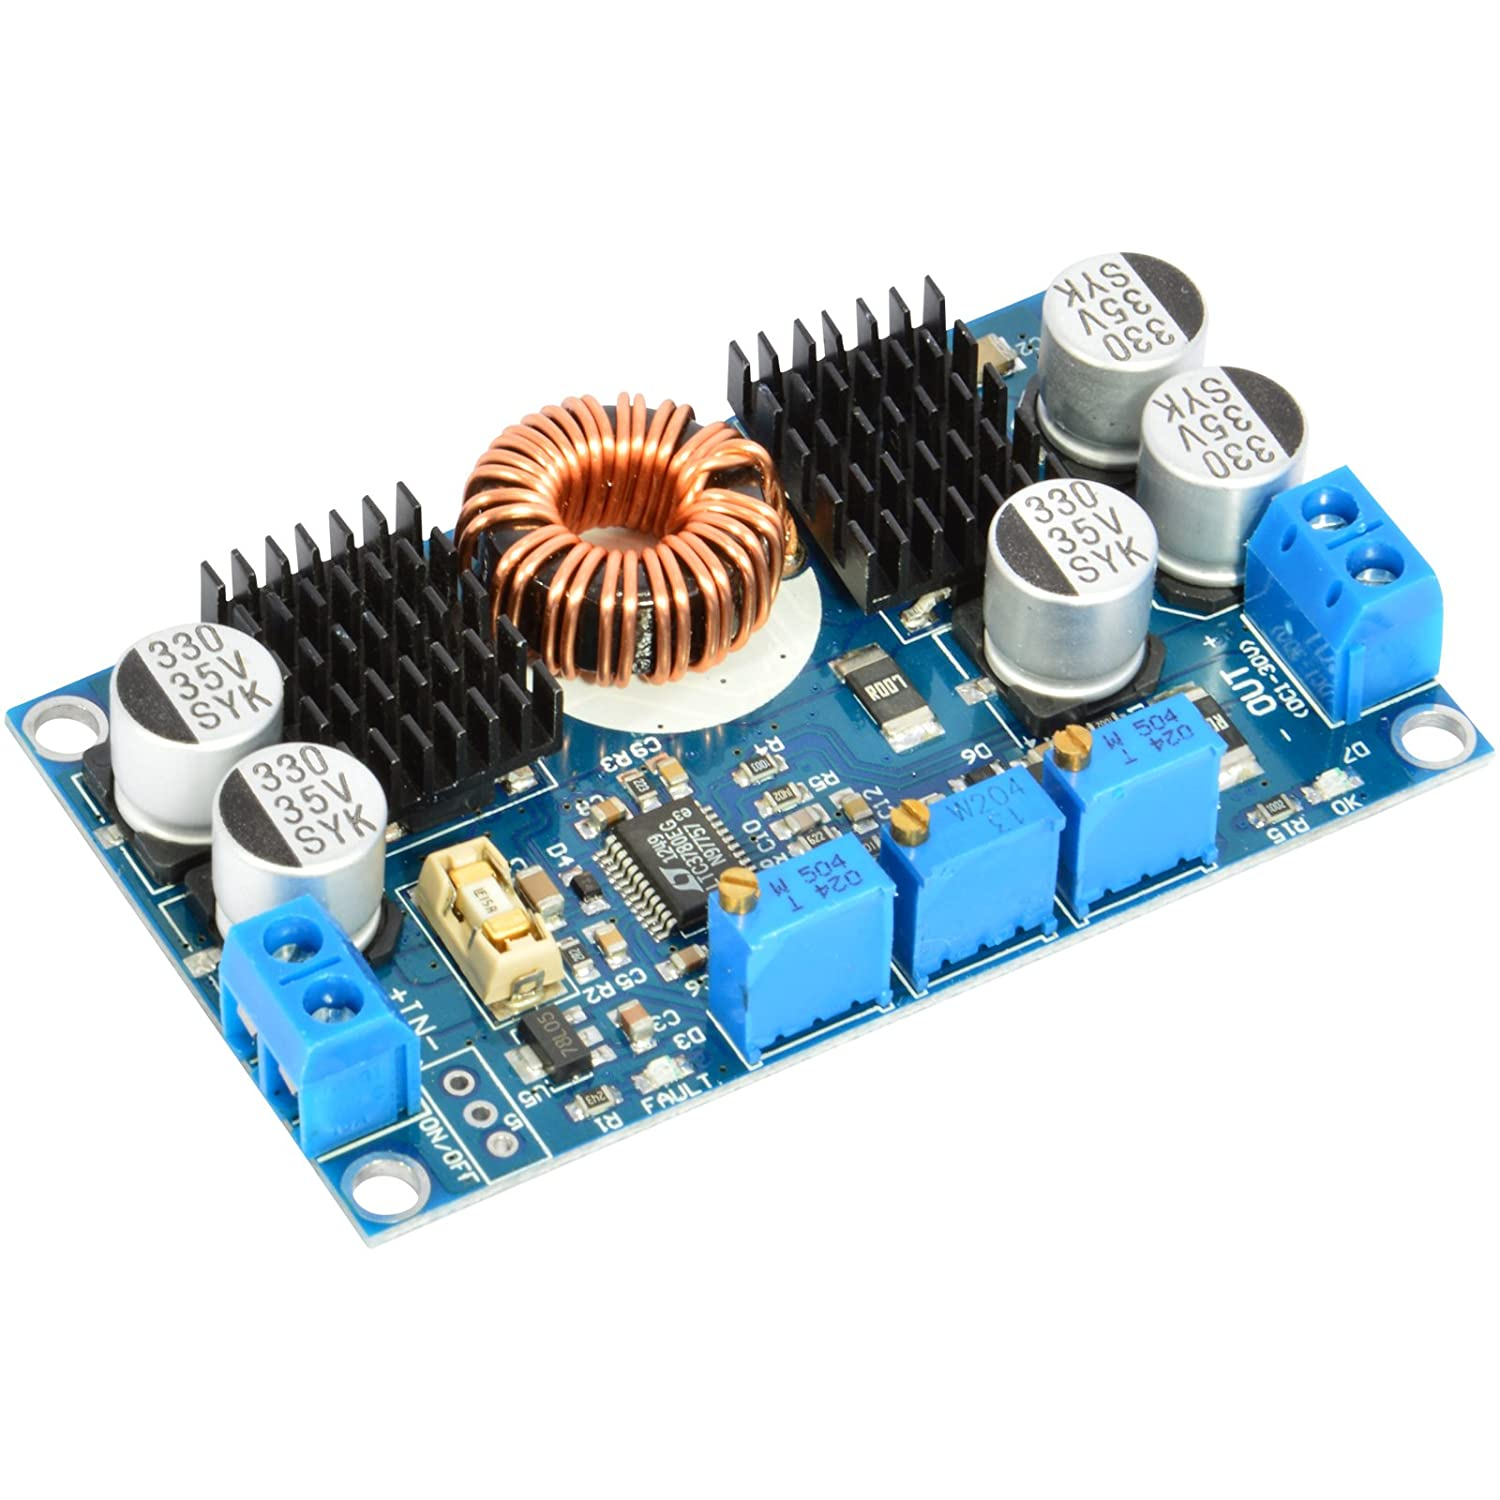 Jacobsparts Ltc3780 130w Dc Synchronous Buck Boost 12v 7a Rectifier Filter Circuits Electronics Projects Voltage Converter Step Up Down Current Power Regulator Board Highest